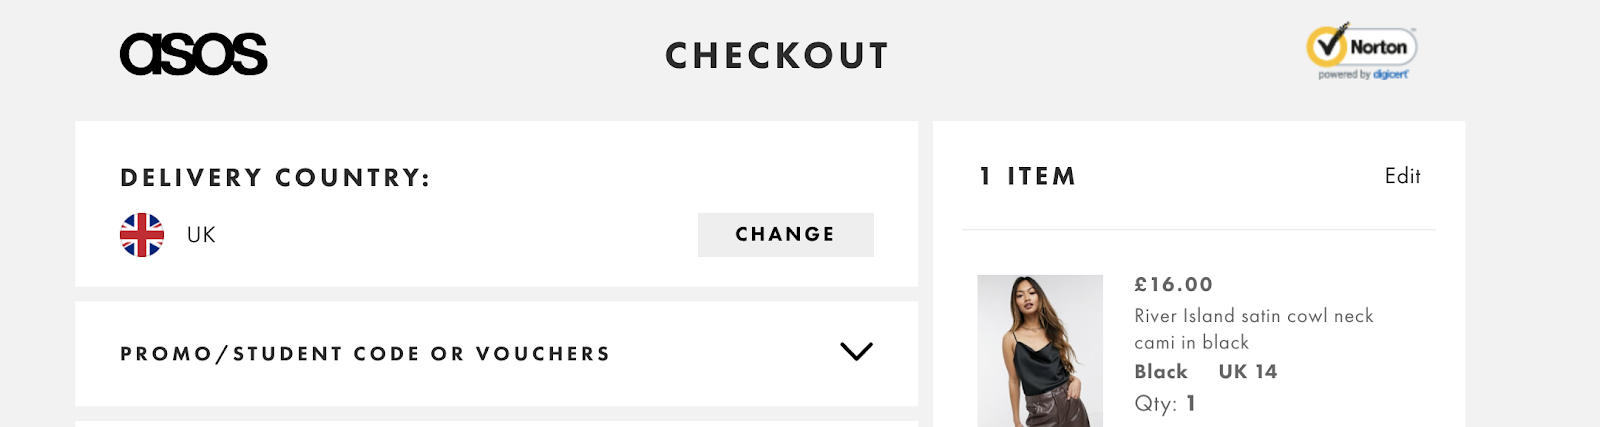 Example of ASOS checkout page